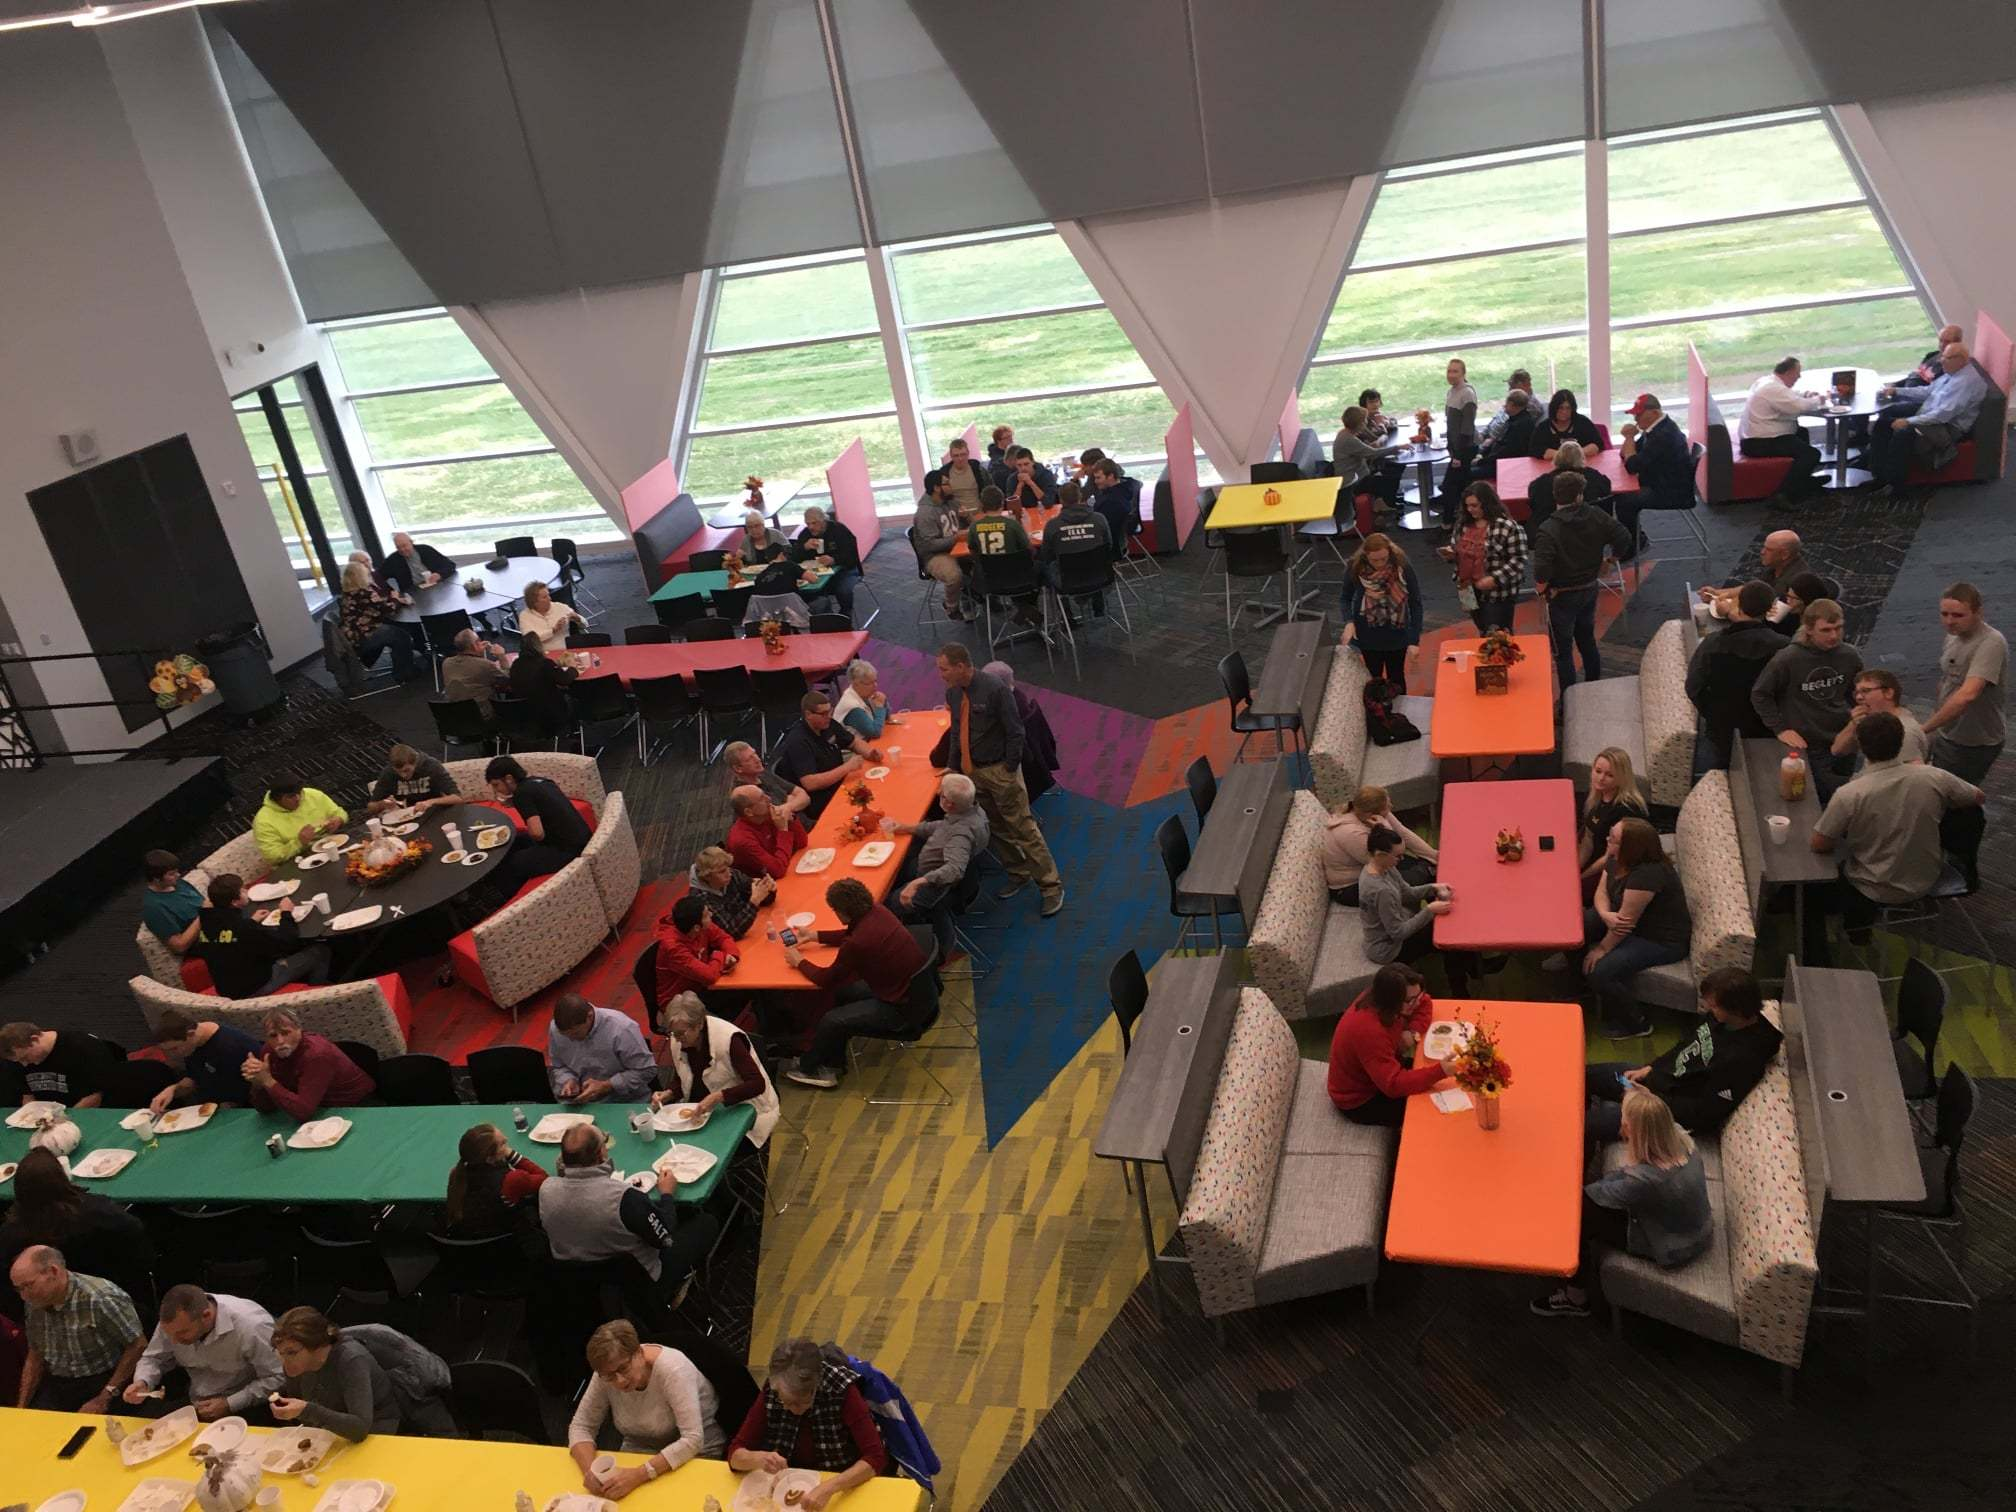 Bird's eye view of the student commons during the Thanksgiving Meal.: Featured Image 1